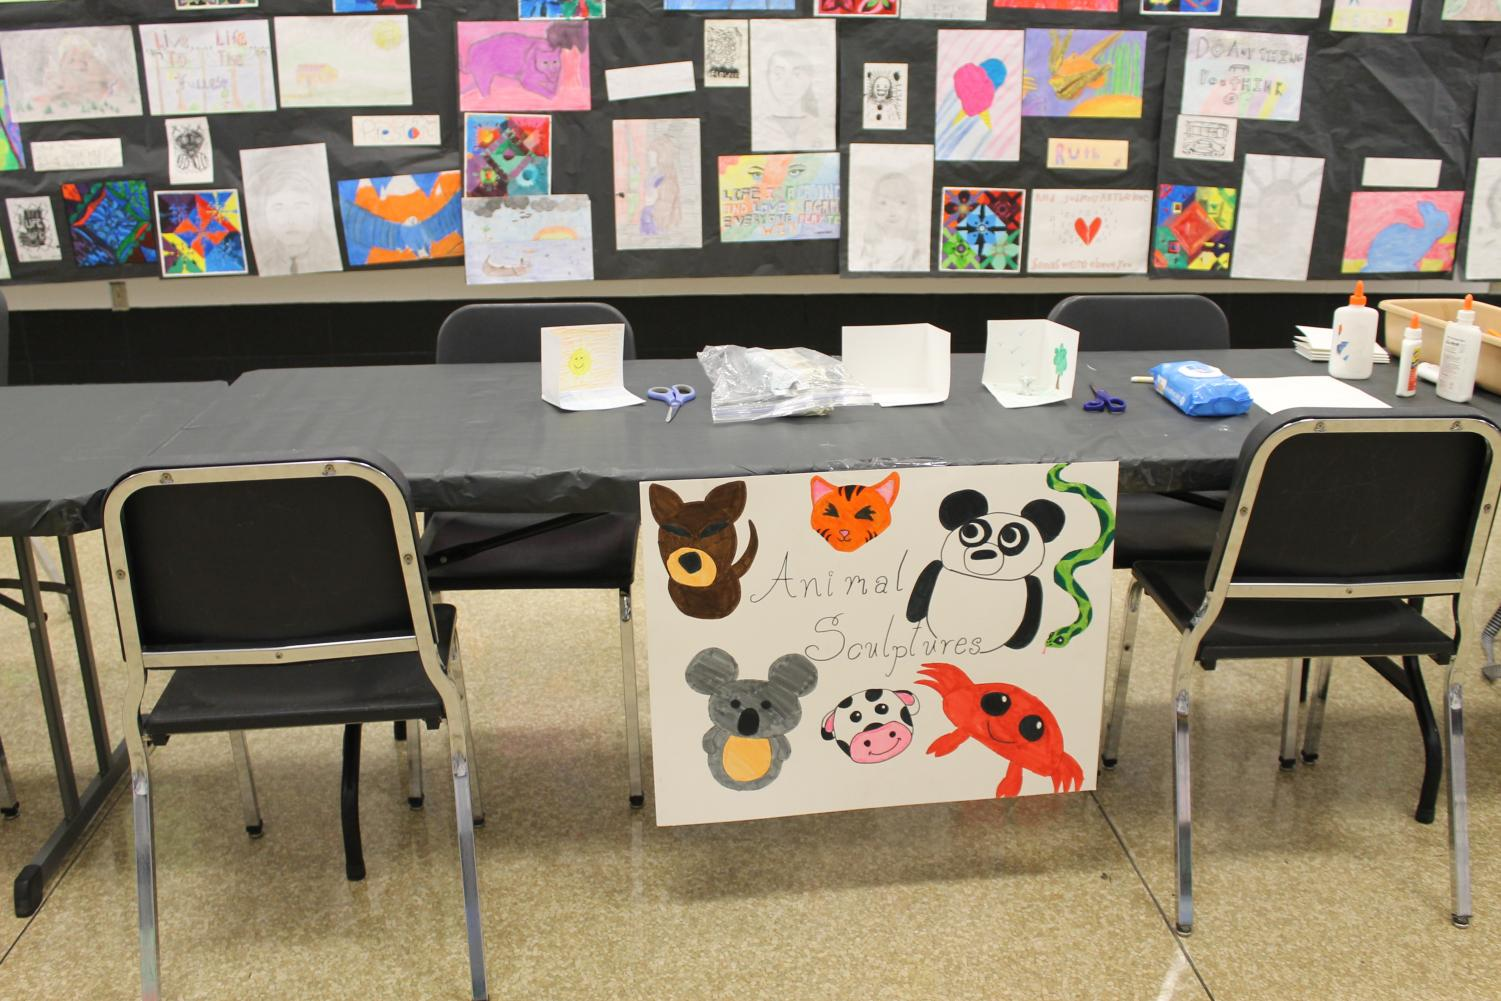 From Doodles to Masterpieces: 2k19 Art Show – Scratch Pad